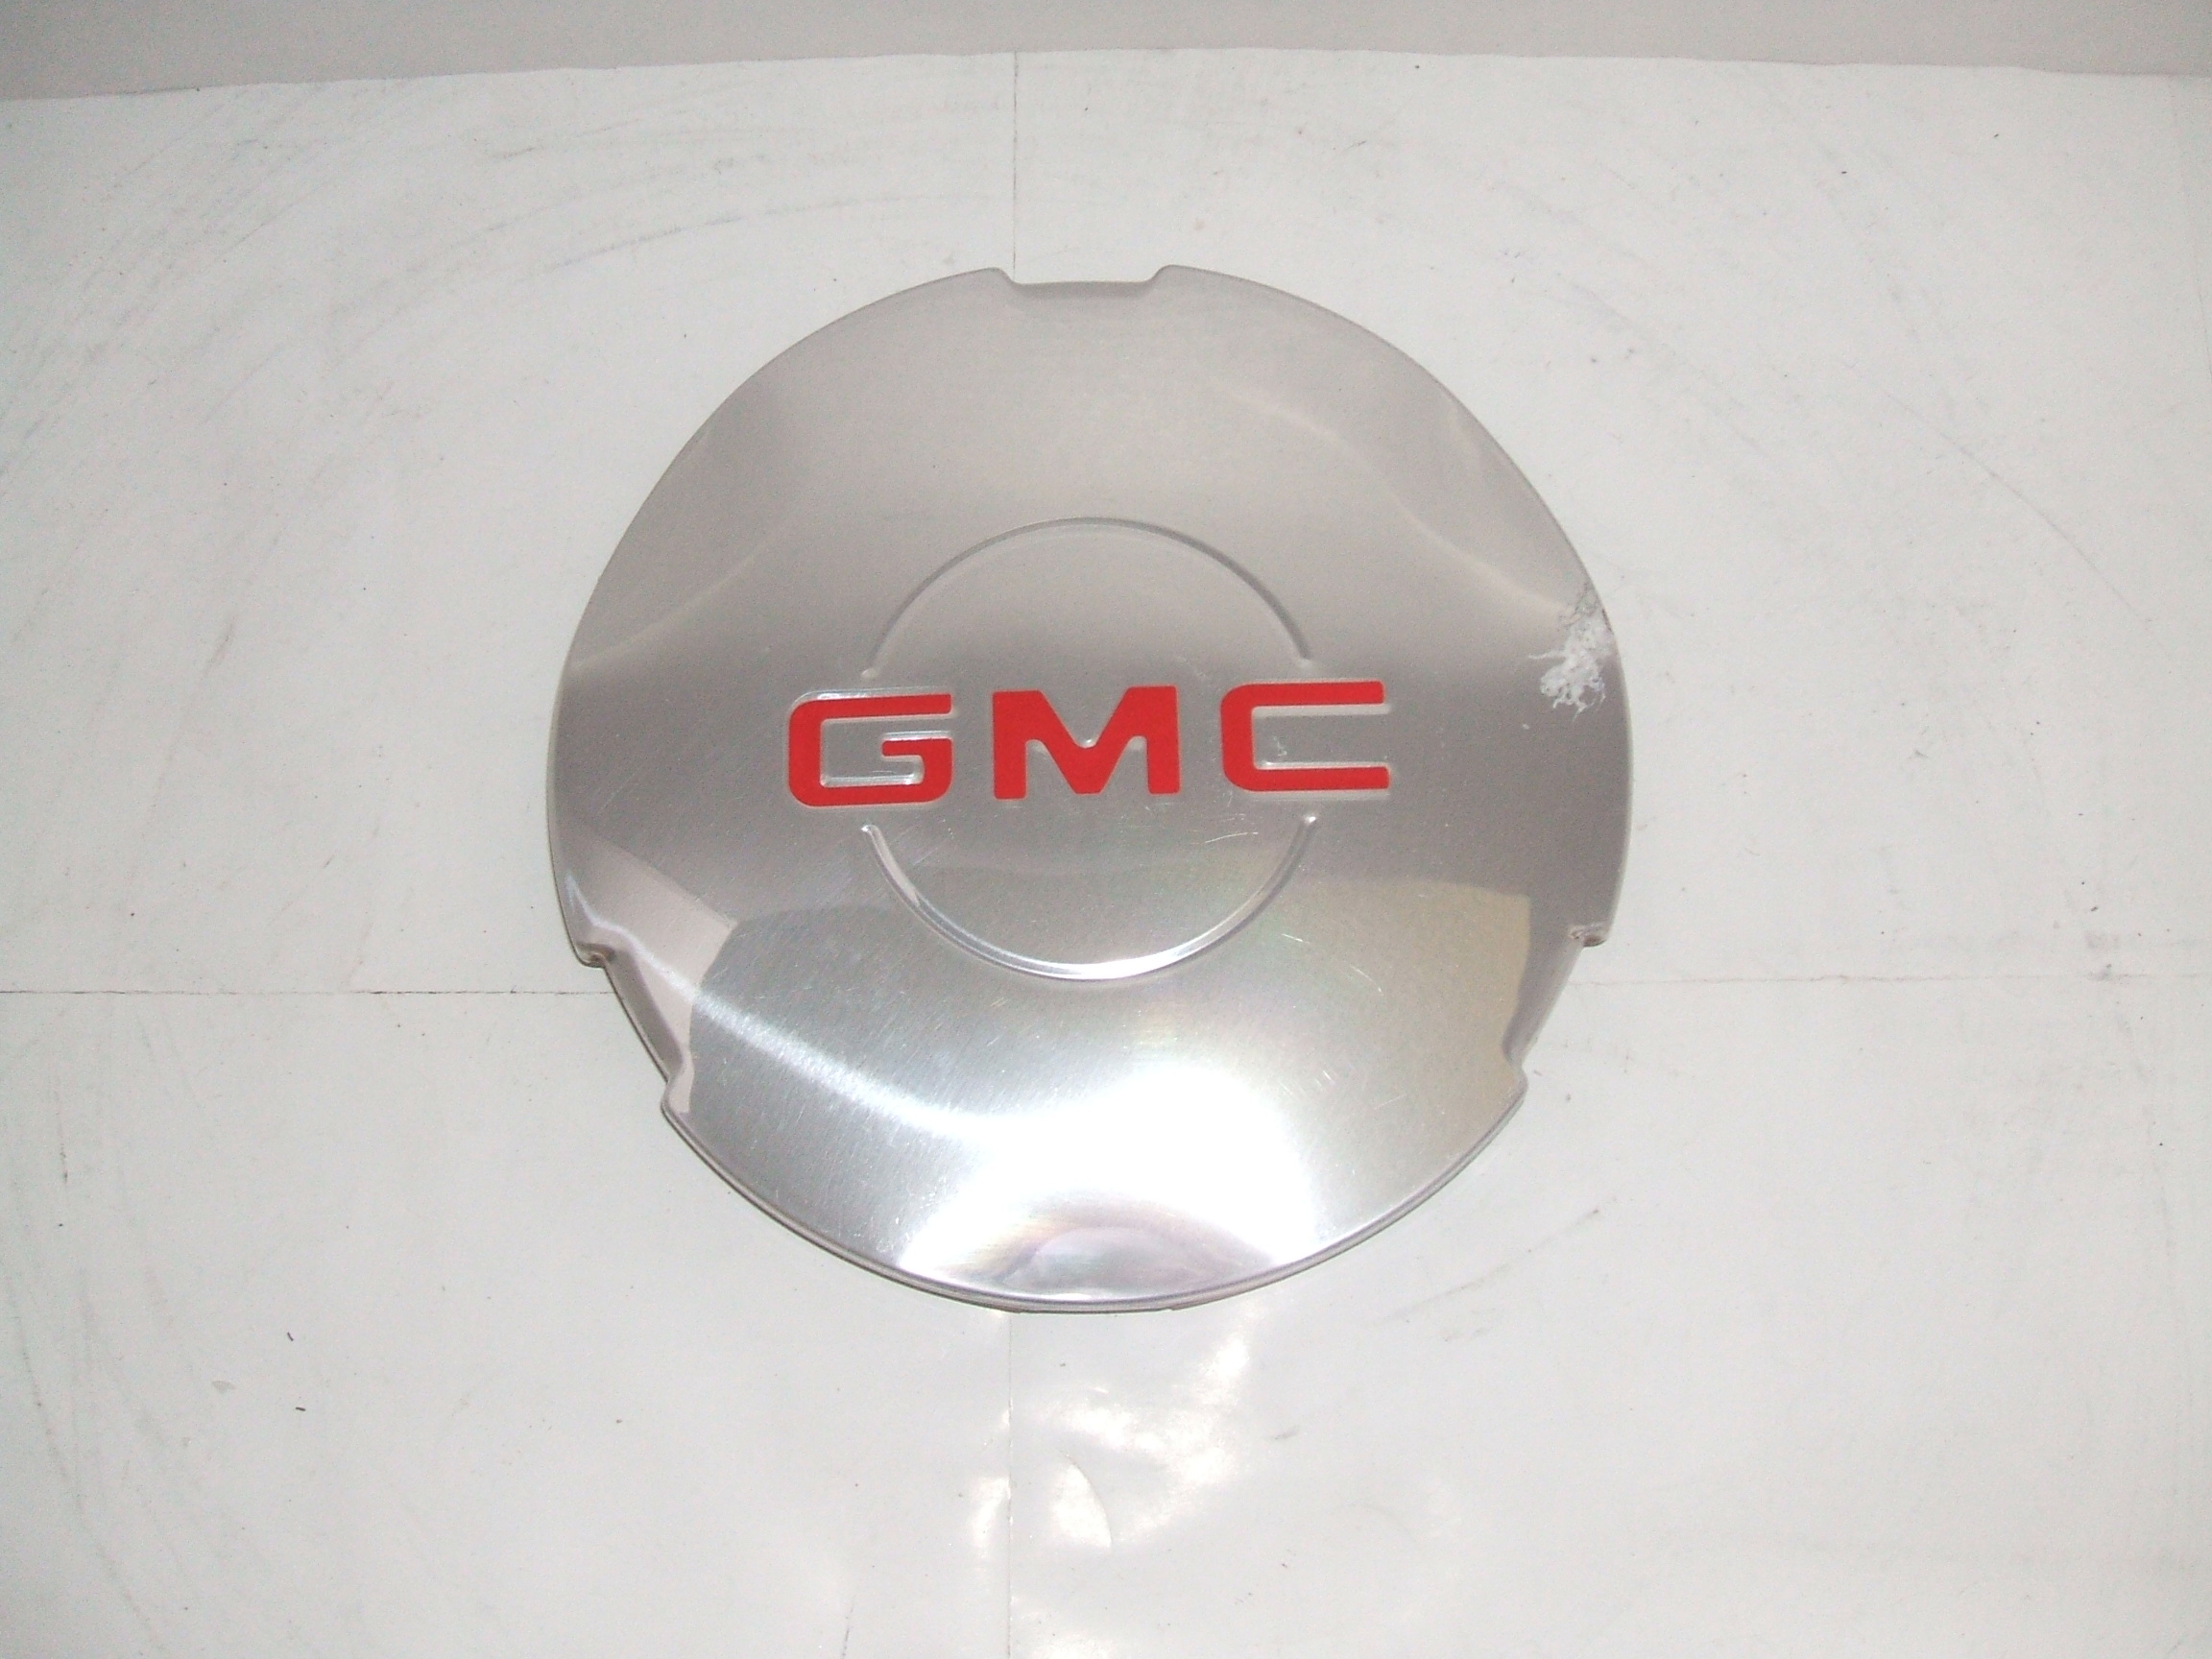 Gmc 1500 Sierra Yukon 99-03 Center Cap 5095 P/N 15712389